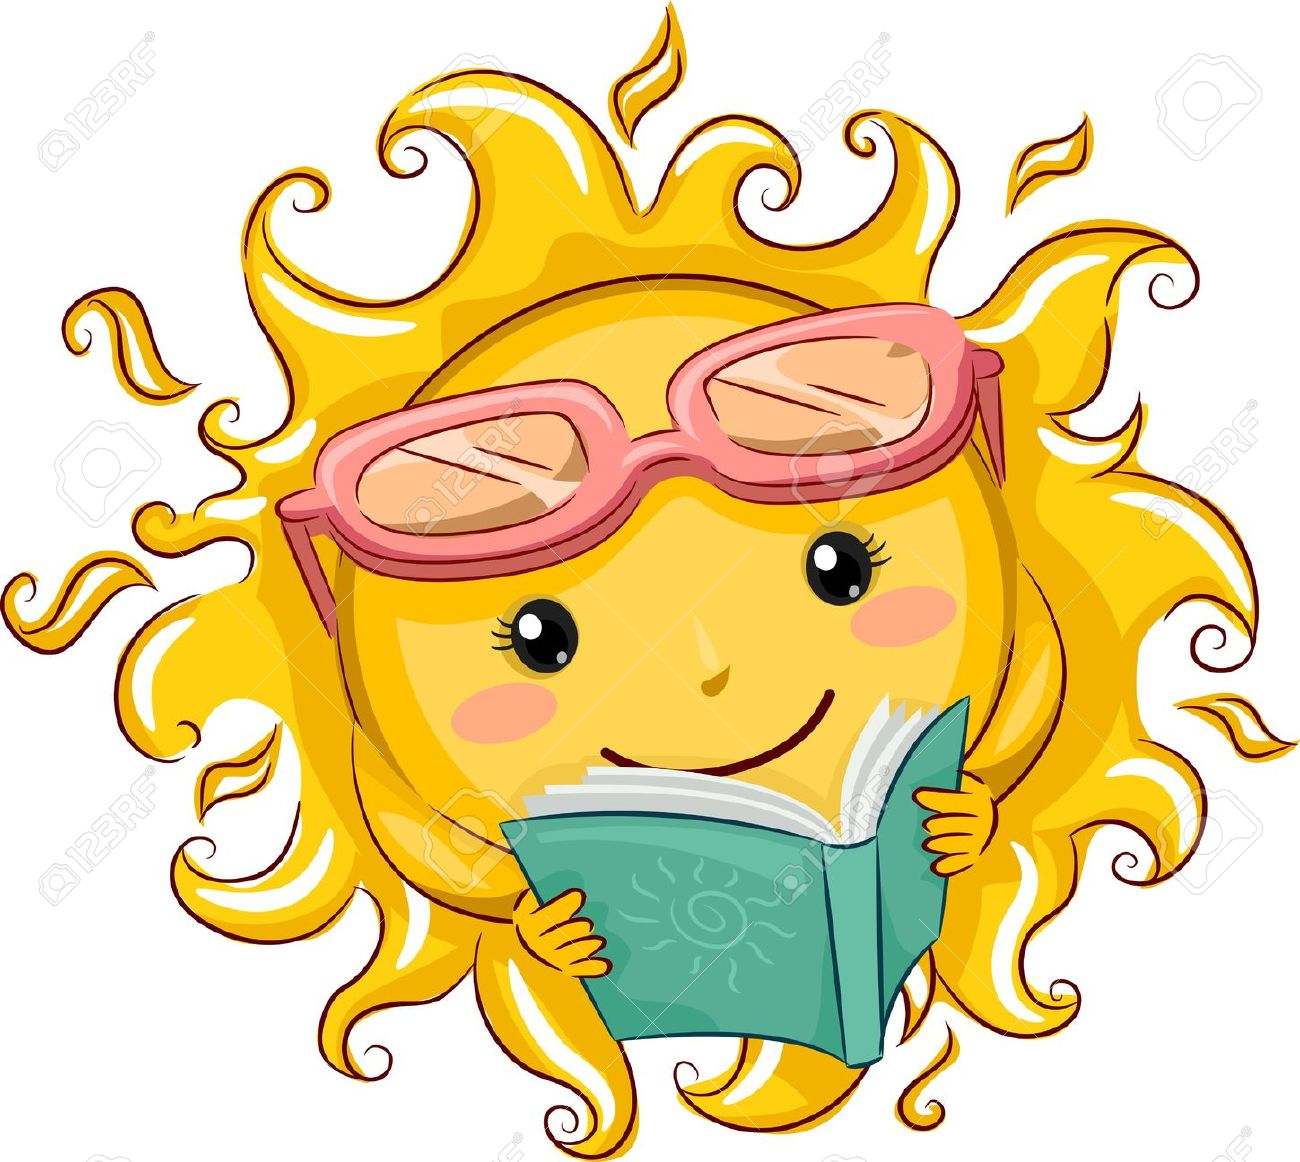 Image result for sun reading